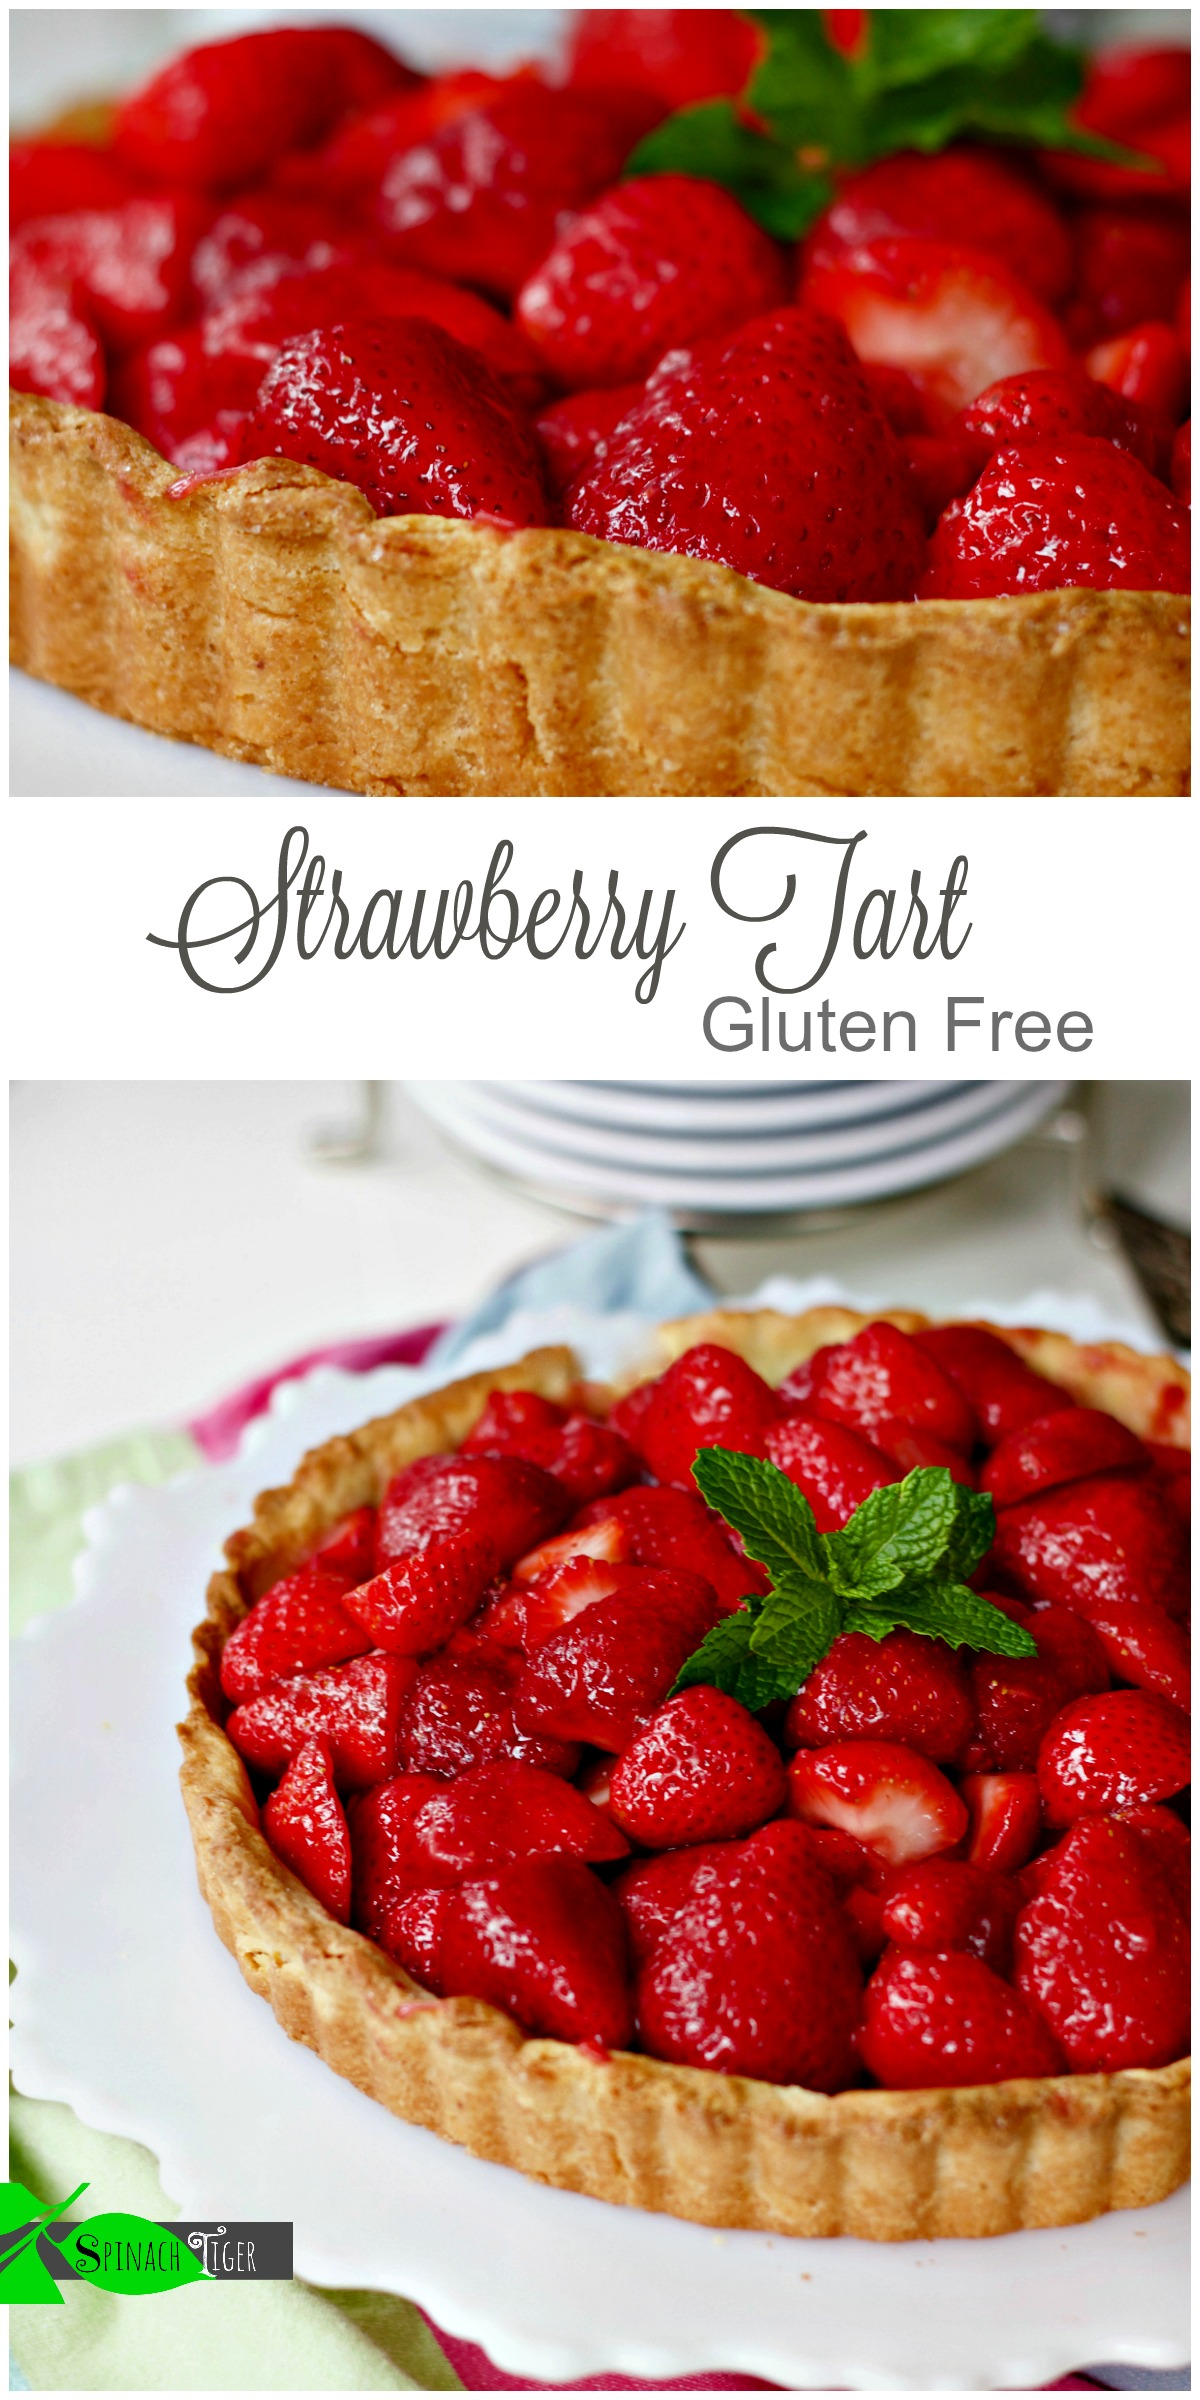 Gluten Free Easy Strawberry Pie Recipe from Spinach Tiger